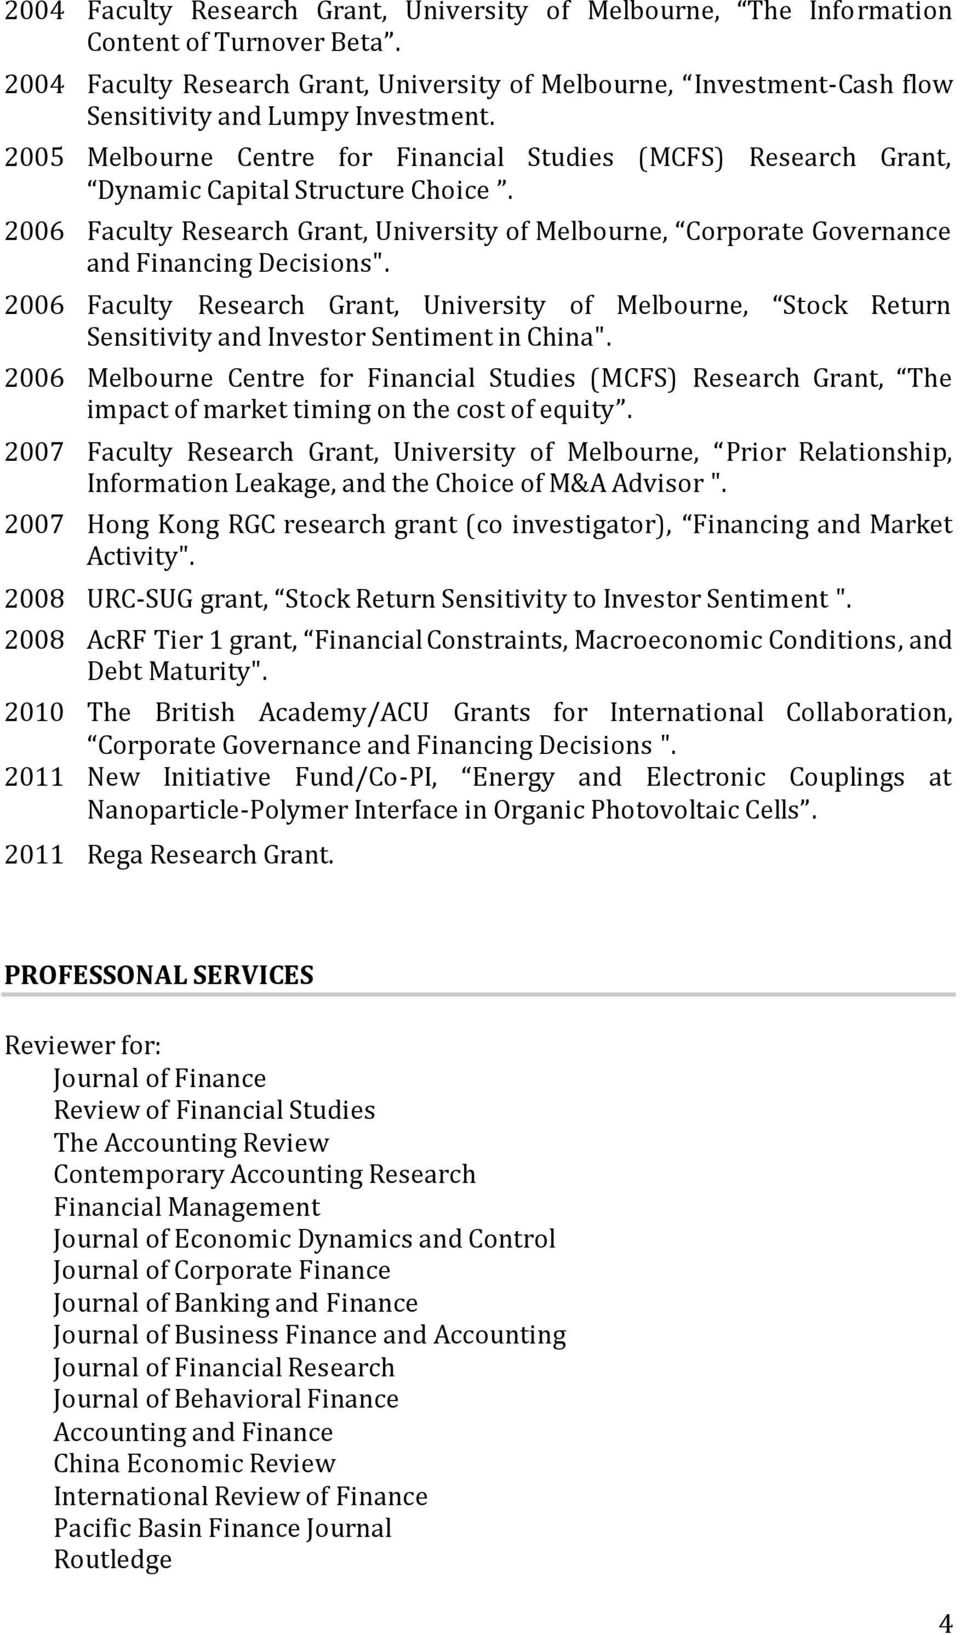 2005 Melbourne Centre for Financial Studies (MCFS) Research Grant, Dynamic Capital Structure Choice.